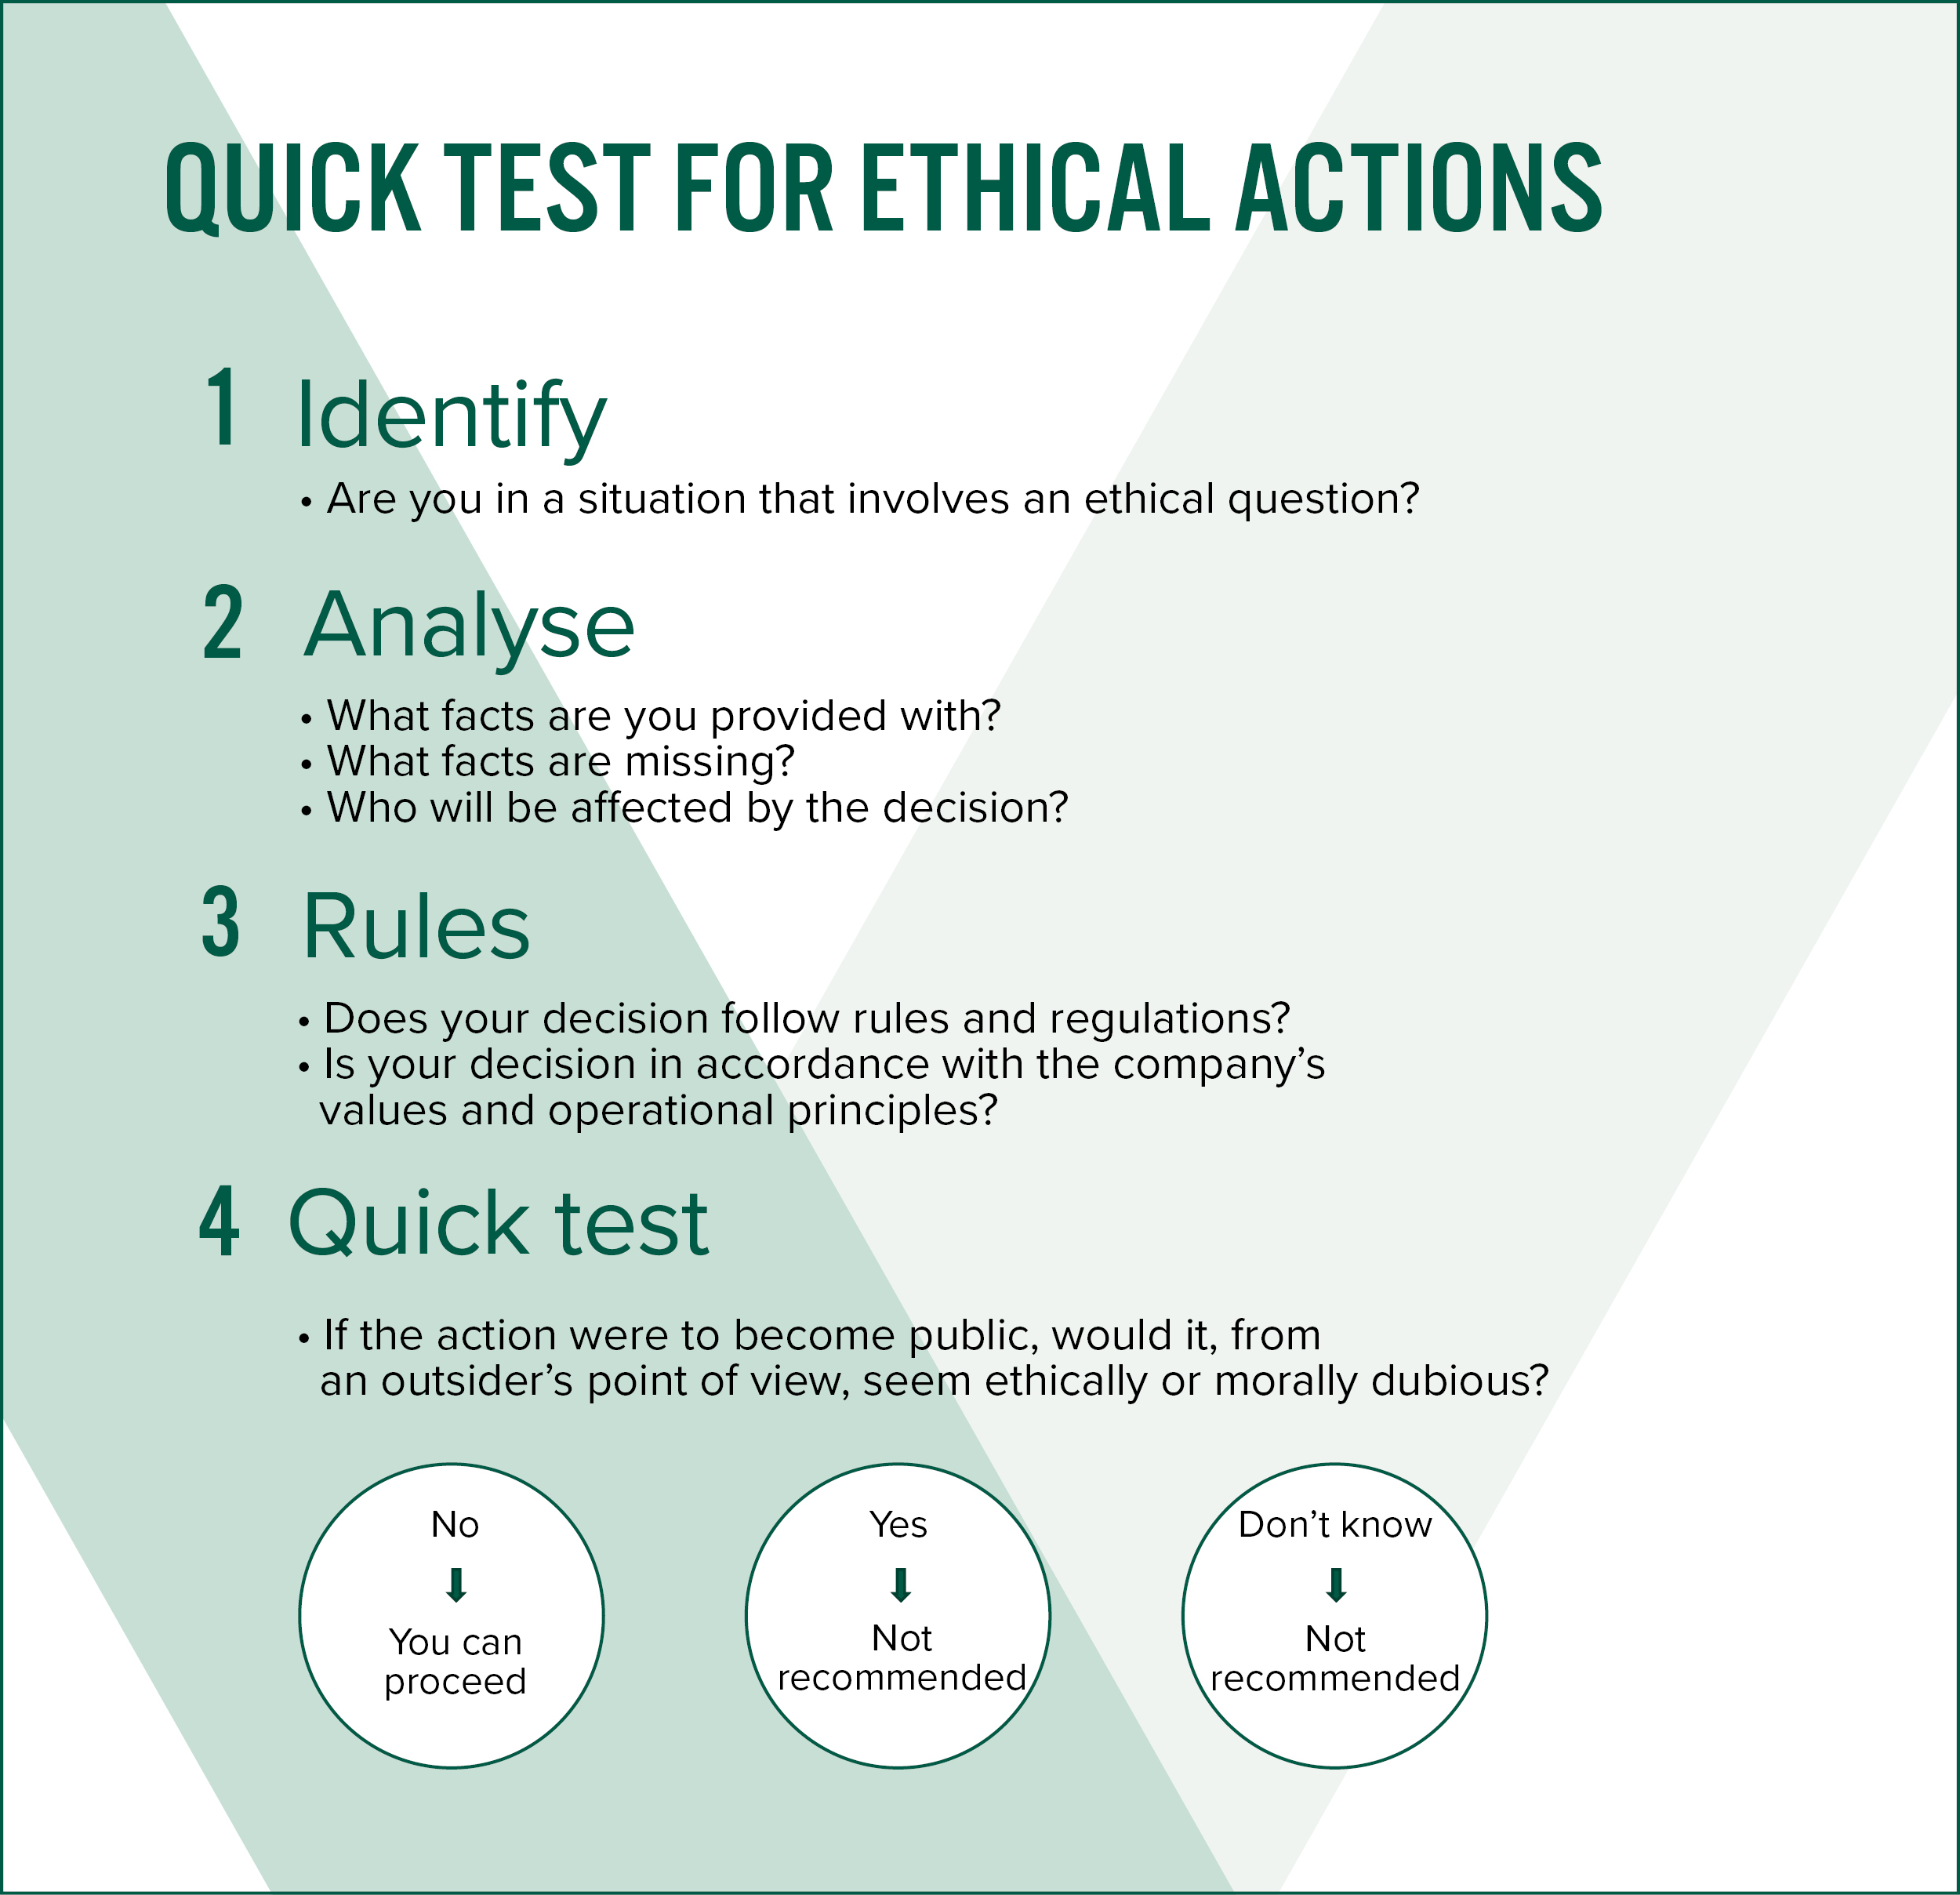 Quick test for ethical actions